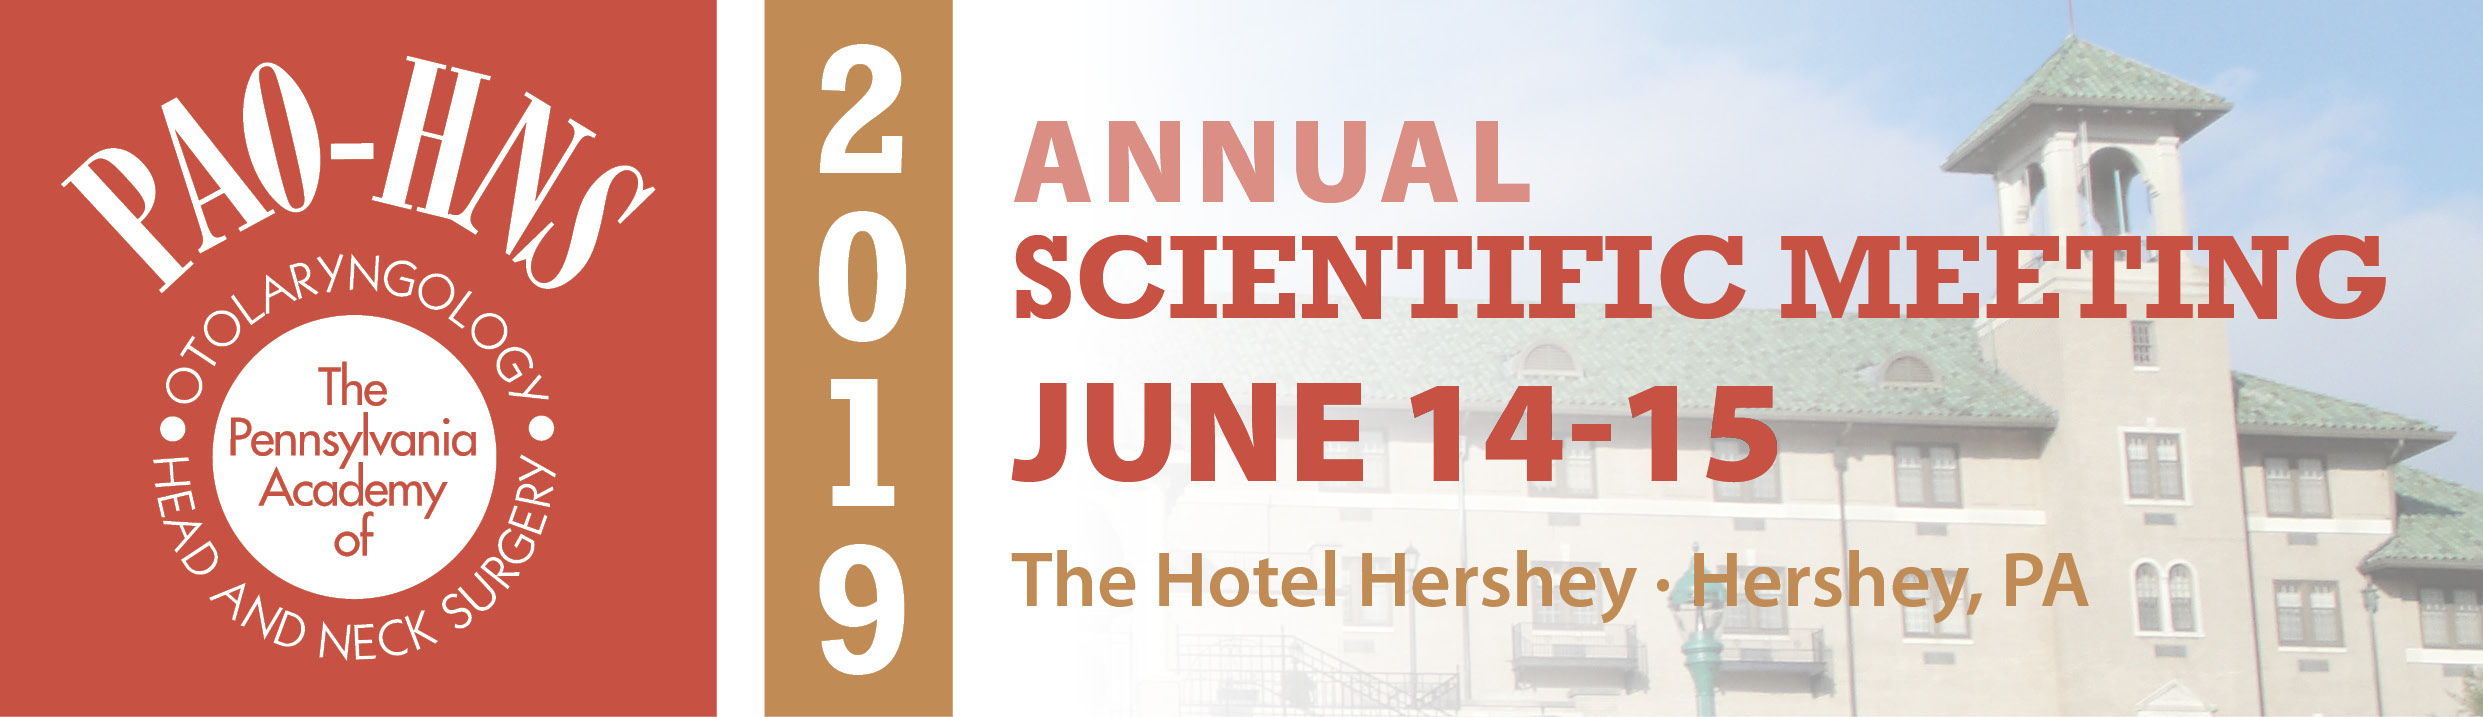 PAO-HNS 2019 Exhibitor Registration